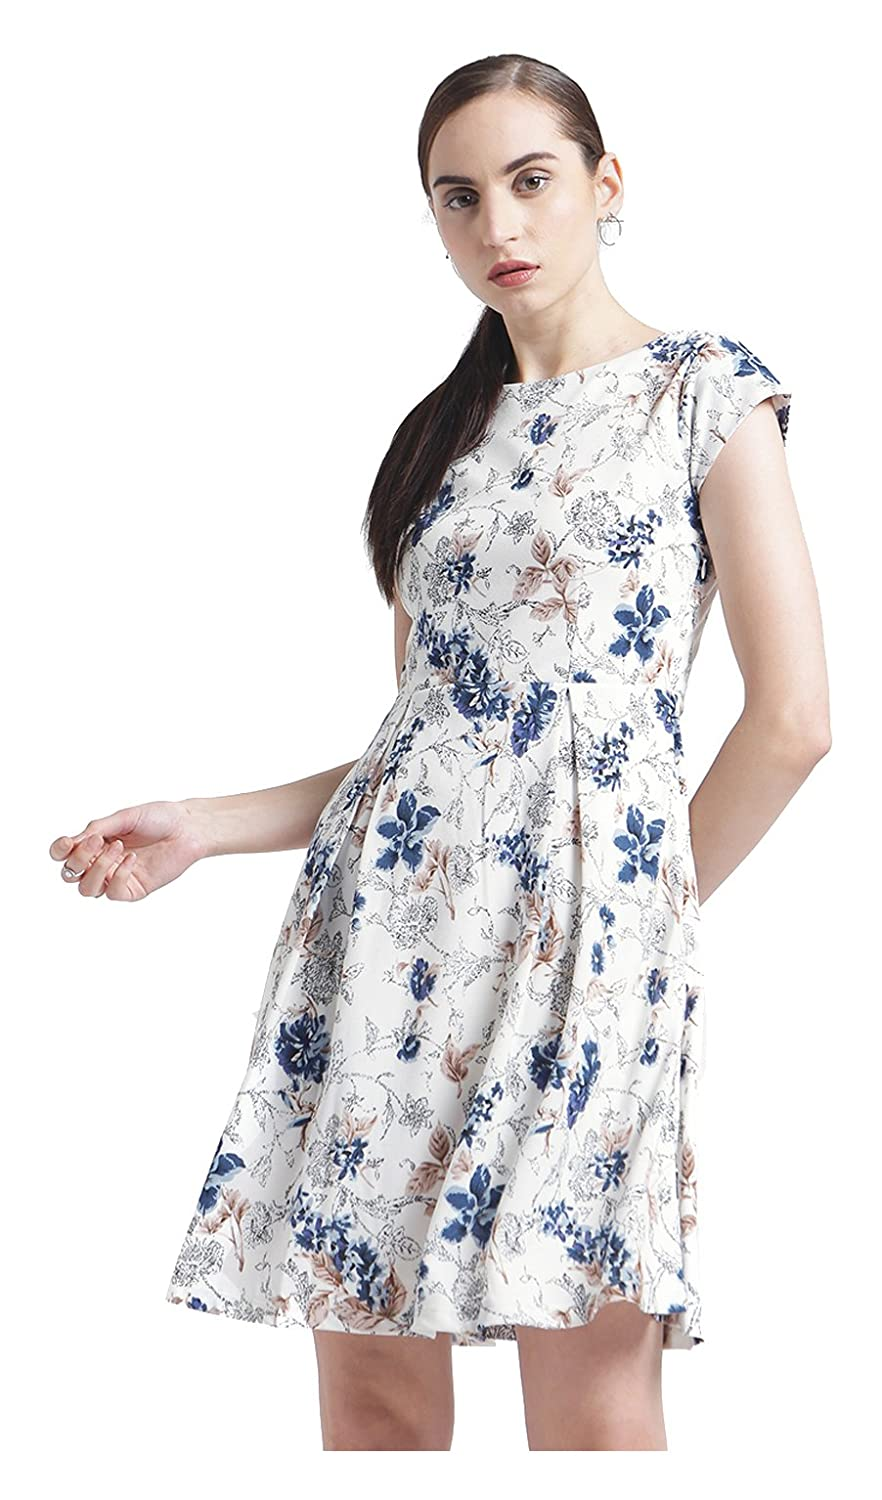 Zink London White Floral Printed Pleated A-Line Dress for Women  Amazon.in   Clothing   Accessories 38bce6fad